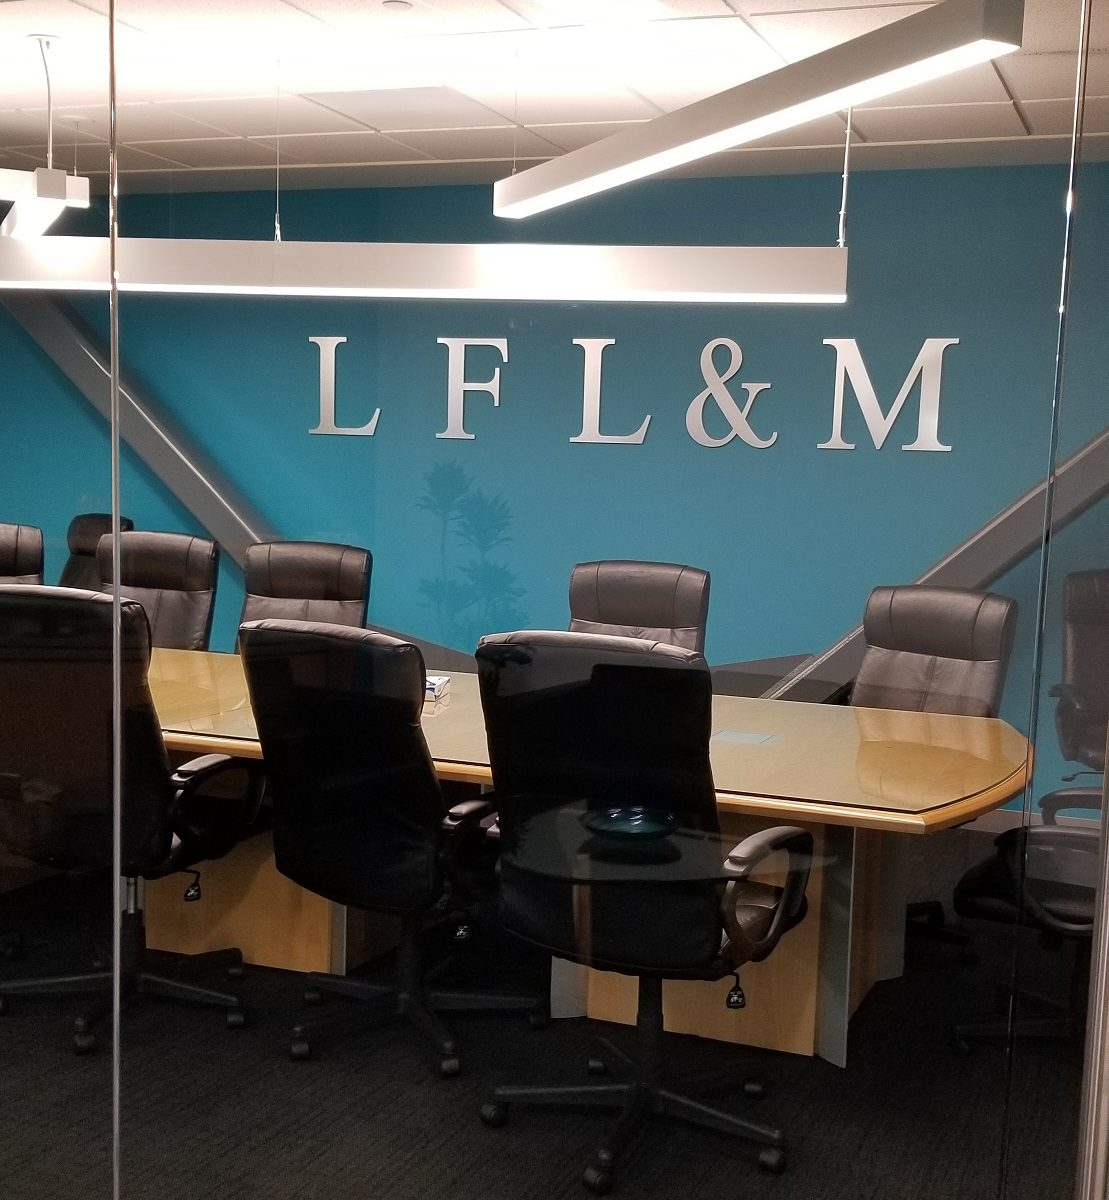 law firm signage, office lobby sign, custom lobby sign, lobby logo, lobby sign for business, metal lobby sign, company lobby sign, conference room lobby sign, business sign, law firm sign, indoor sign, interior sign, dimensional letters, glendale signage, glendale sign, sign company in Tarzana, sign company in San Fernando Valley, custom business signs, company sign